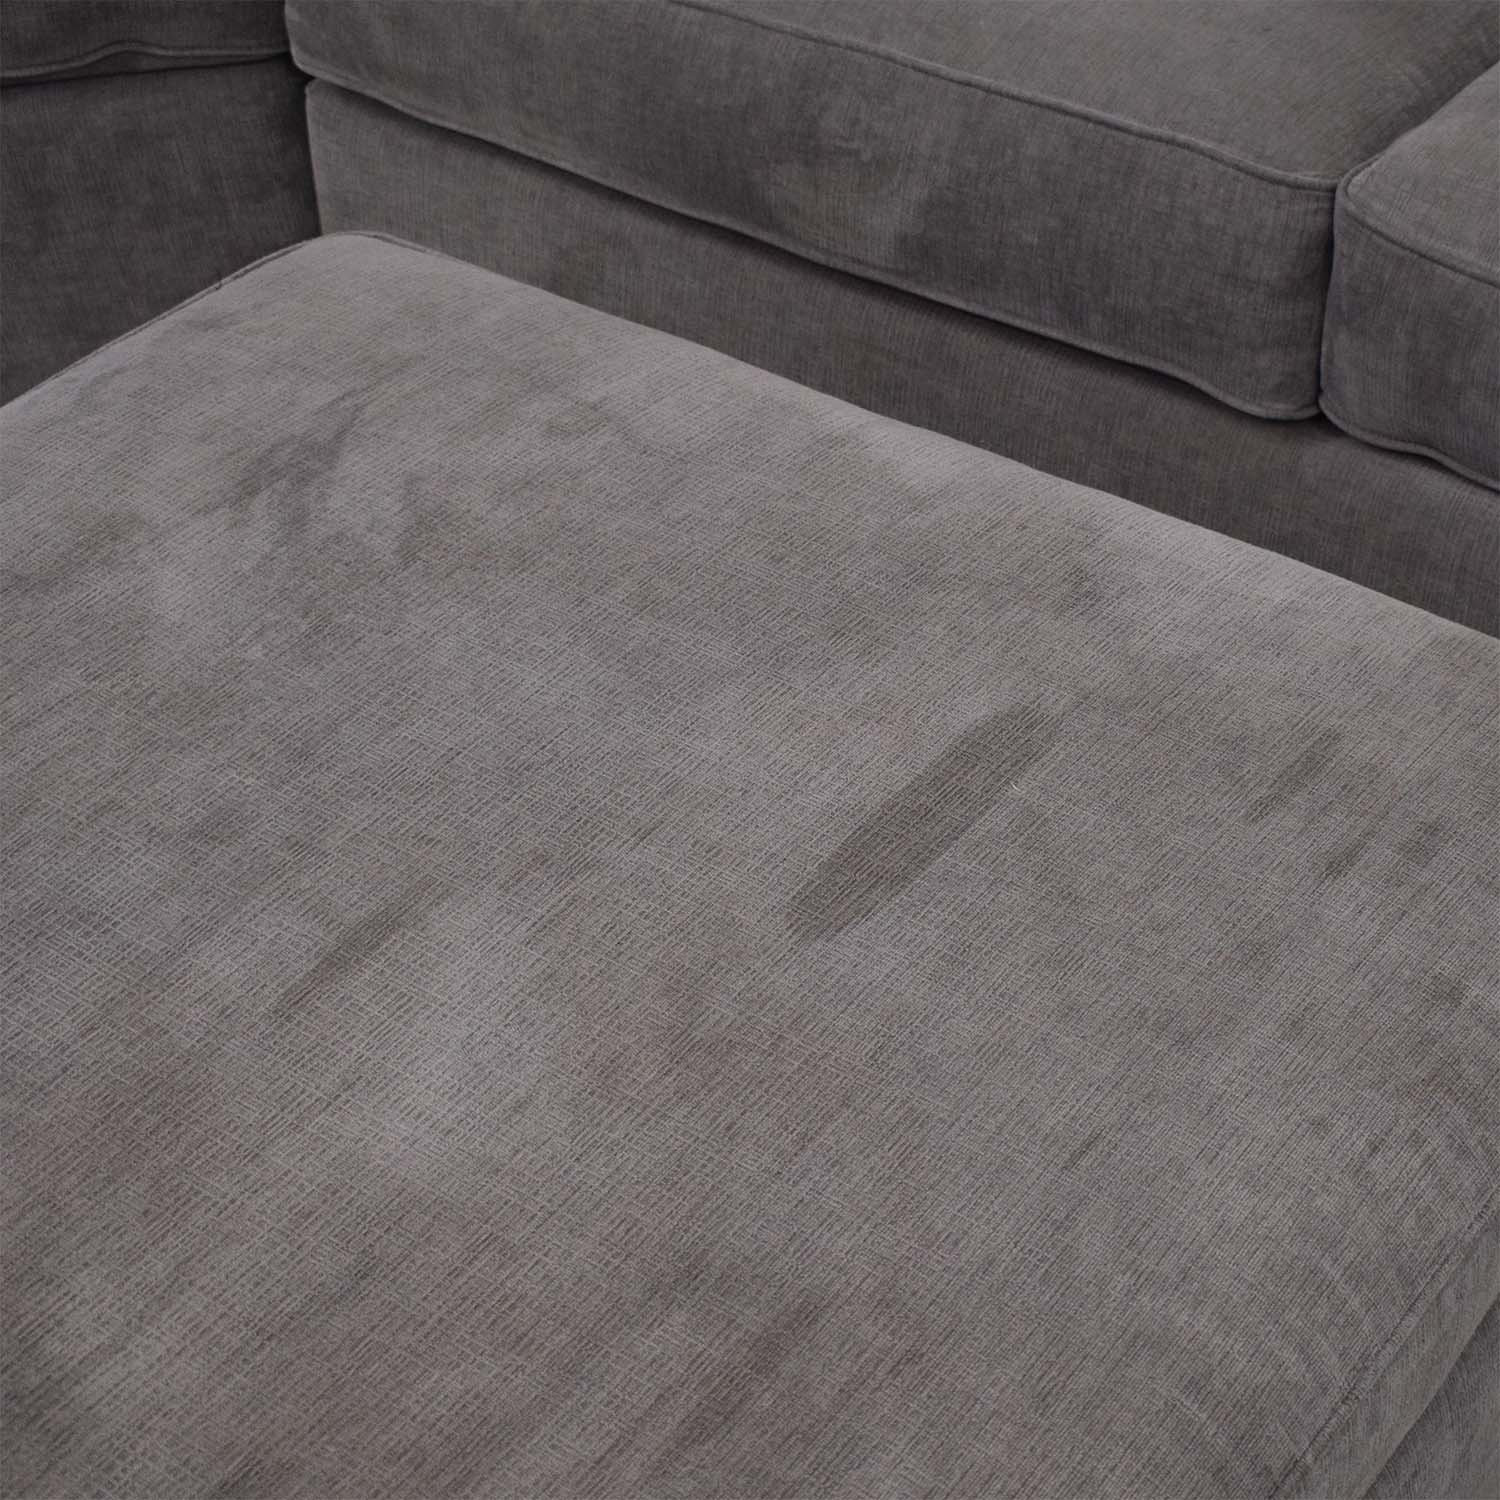 buy Macy's Radley Fabric 6-Piece Chaise Sectional Sofa with Corner Piece and Ottoman Macy's Sofas